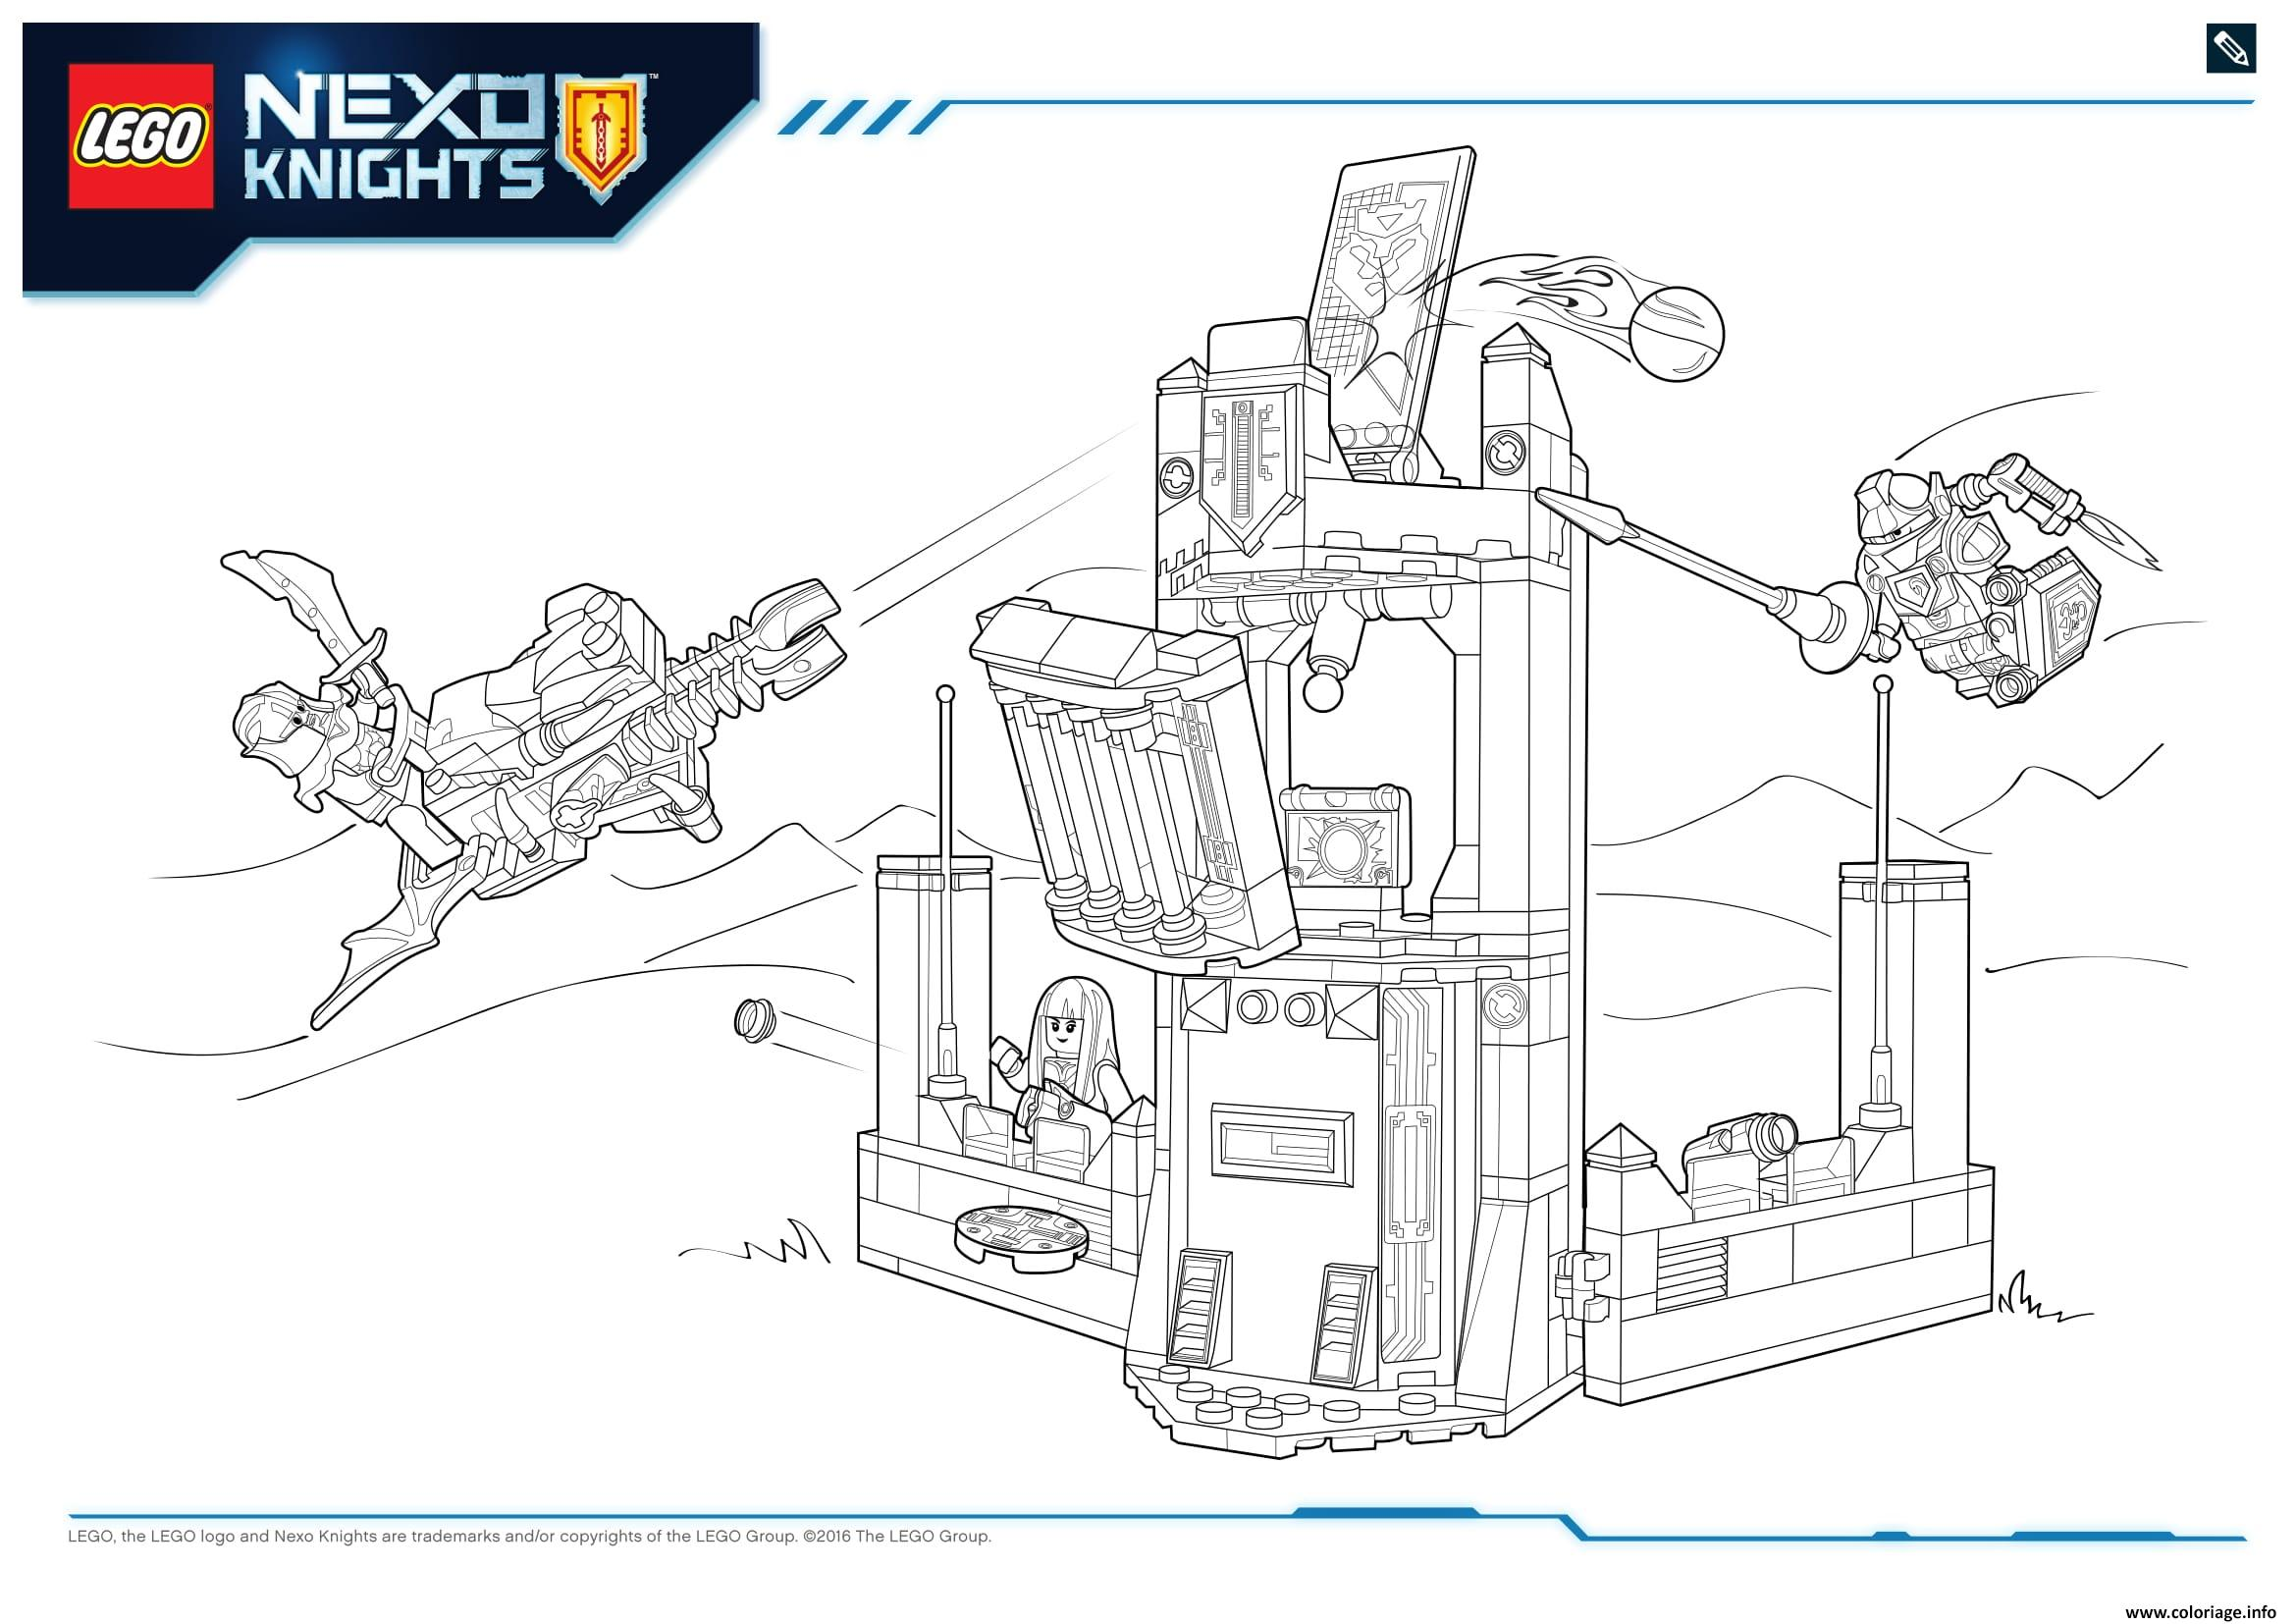 Excellent Coloriage Nexo Knights A Imprimer 47 sur Coloriage idée with Coloriage Nexo Knights A Imprimer